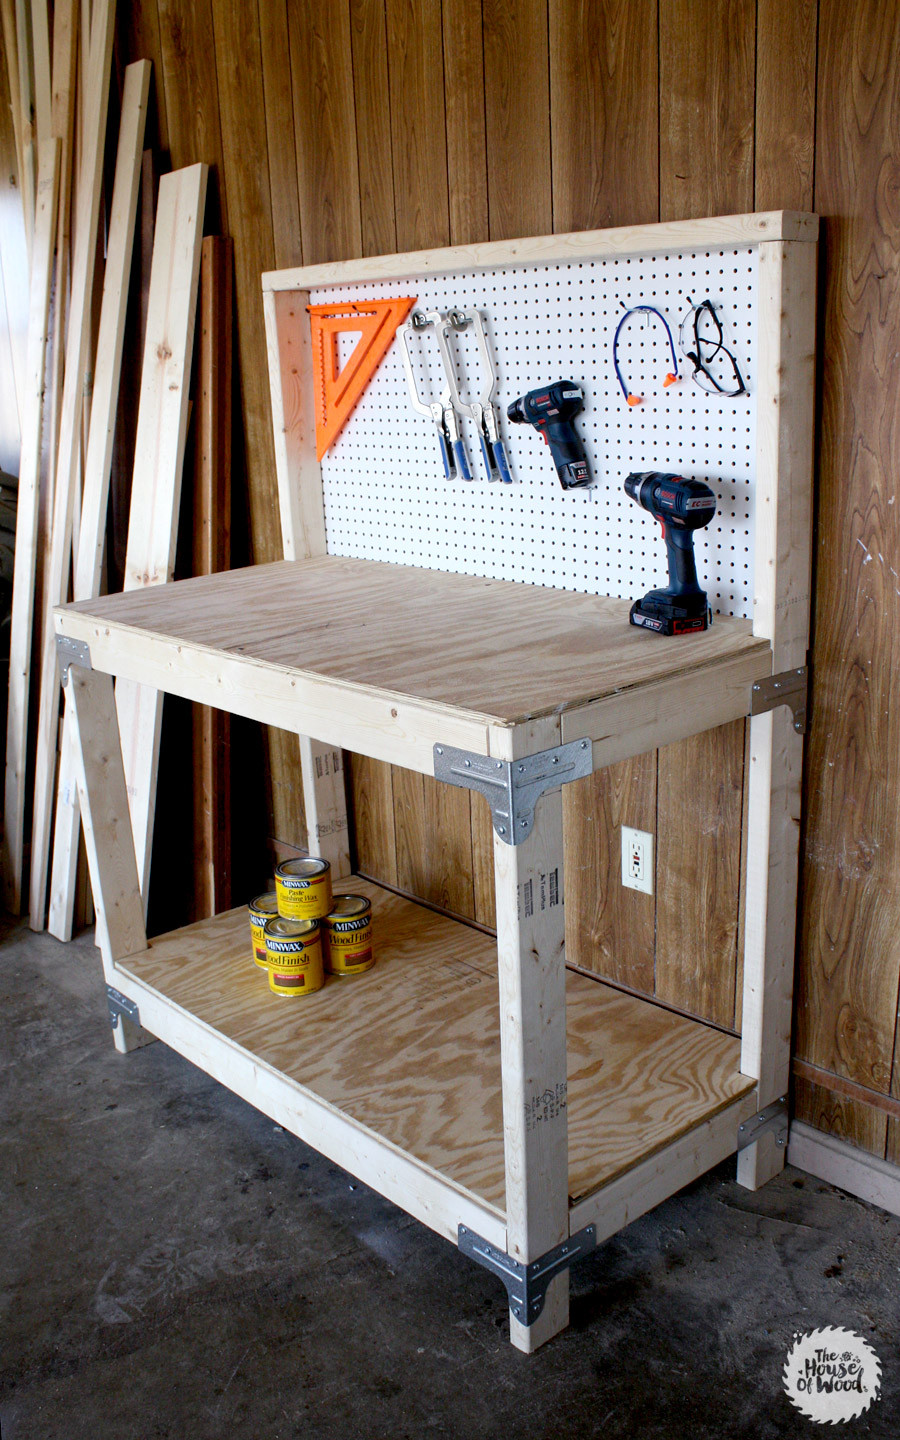 Best ideas about Work Bench DIY . Save or Pin DIY Workbench with Simpson Strong Tie Workbench Kit Now.